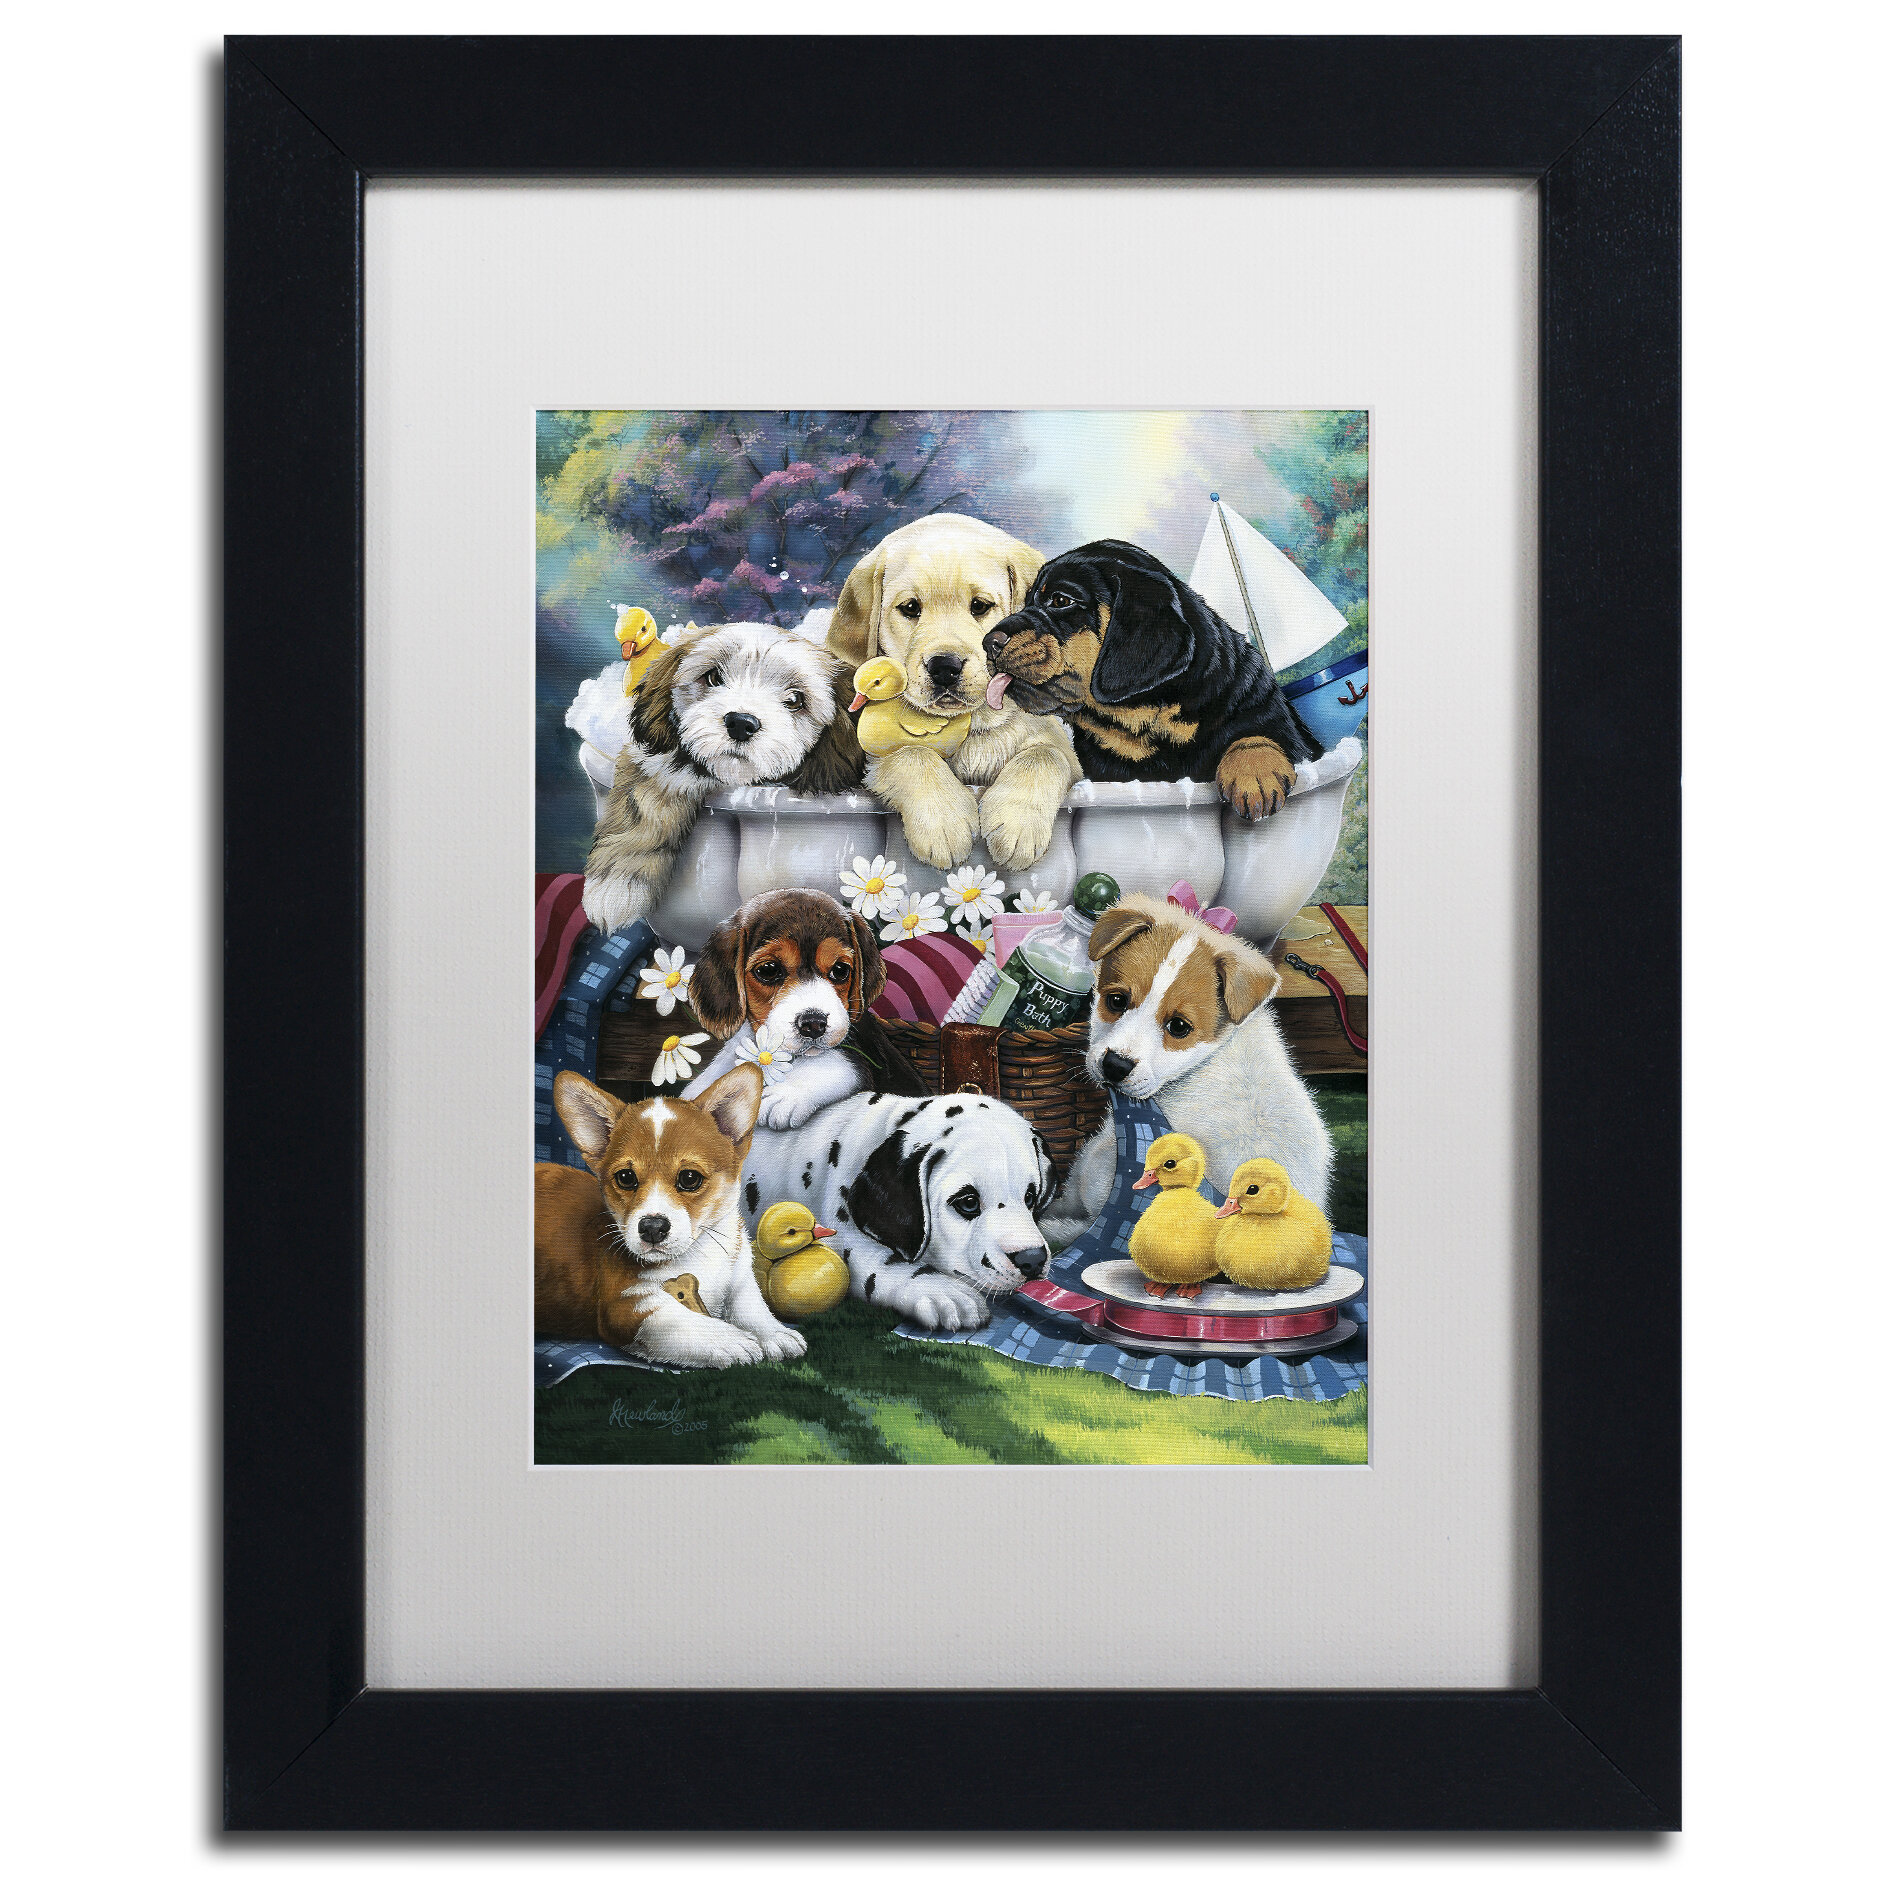 'Bath Time Pups' Framed Graphic Art Print on Canvas